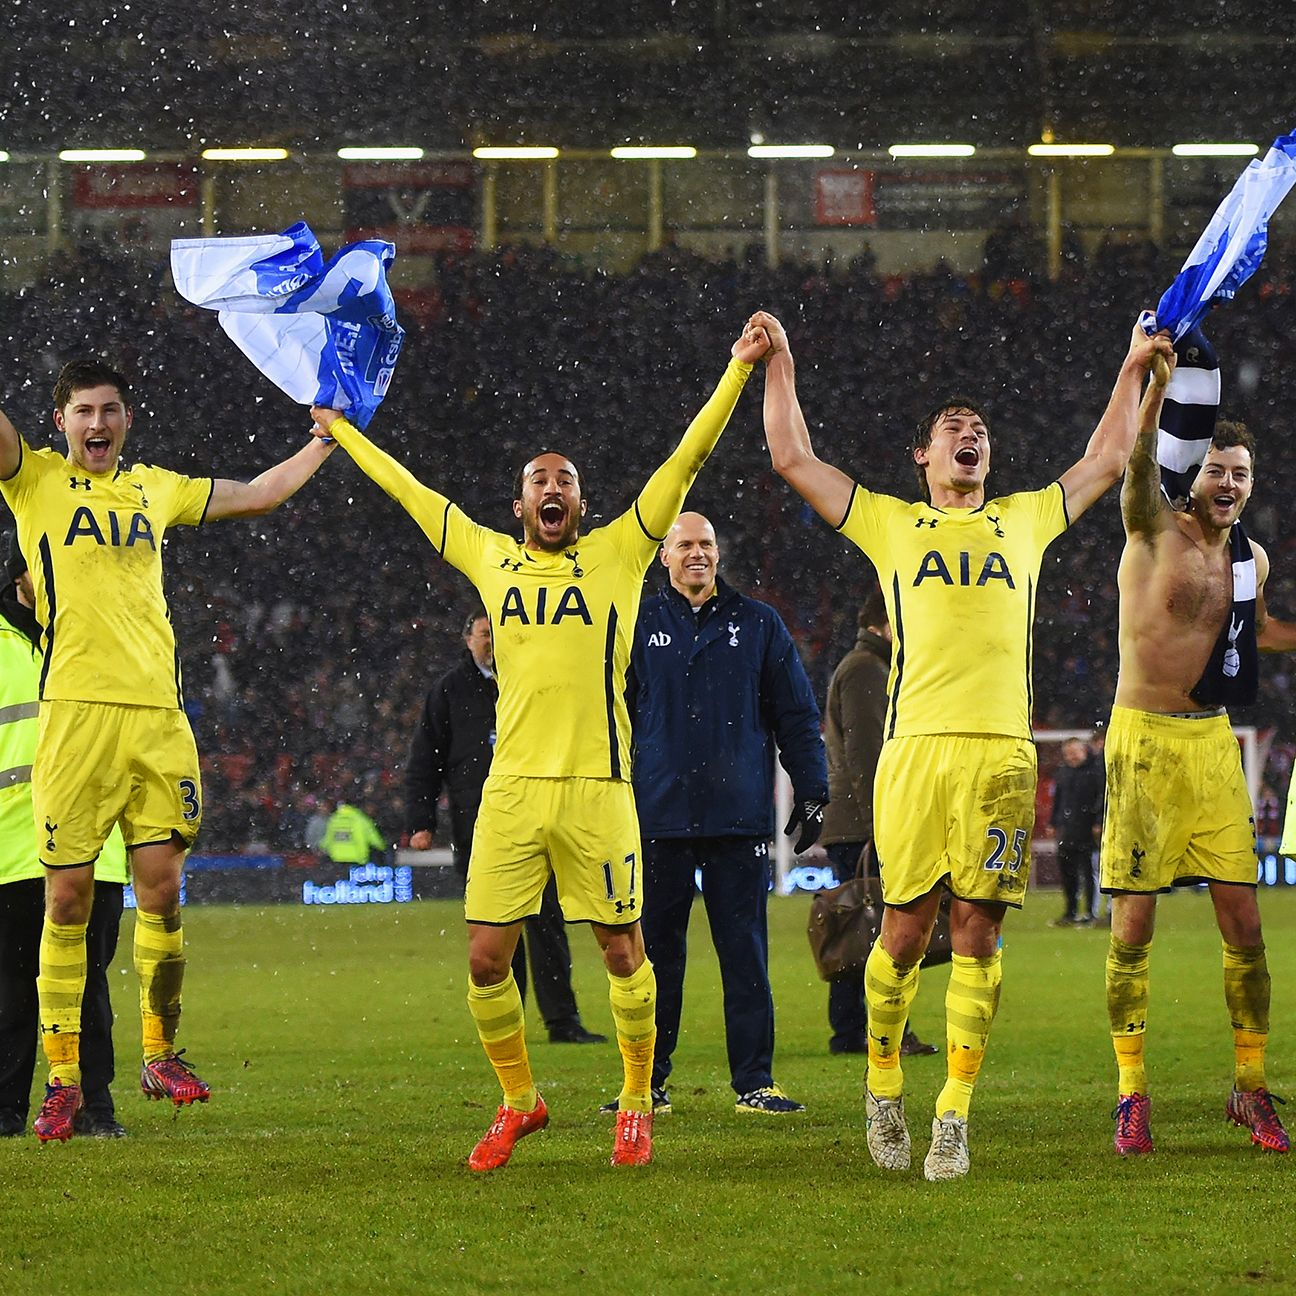 Tottenham will be seeking their fifth League Cup crown.